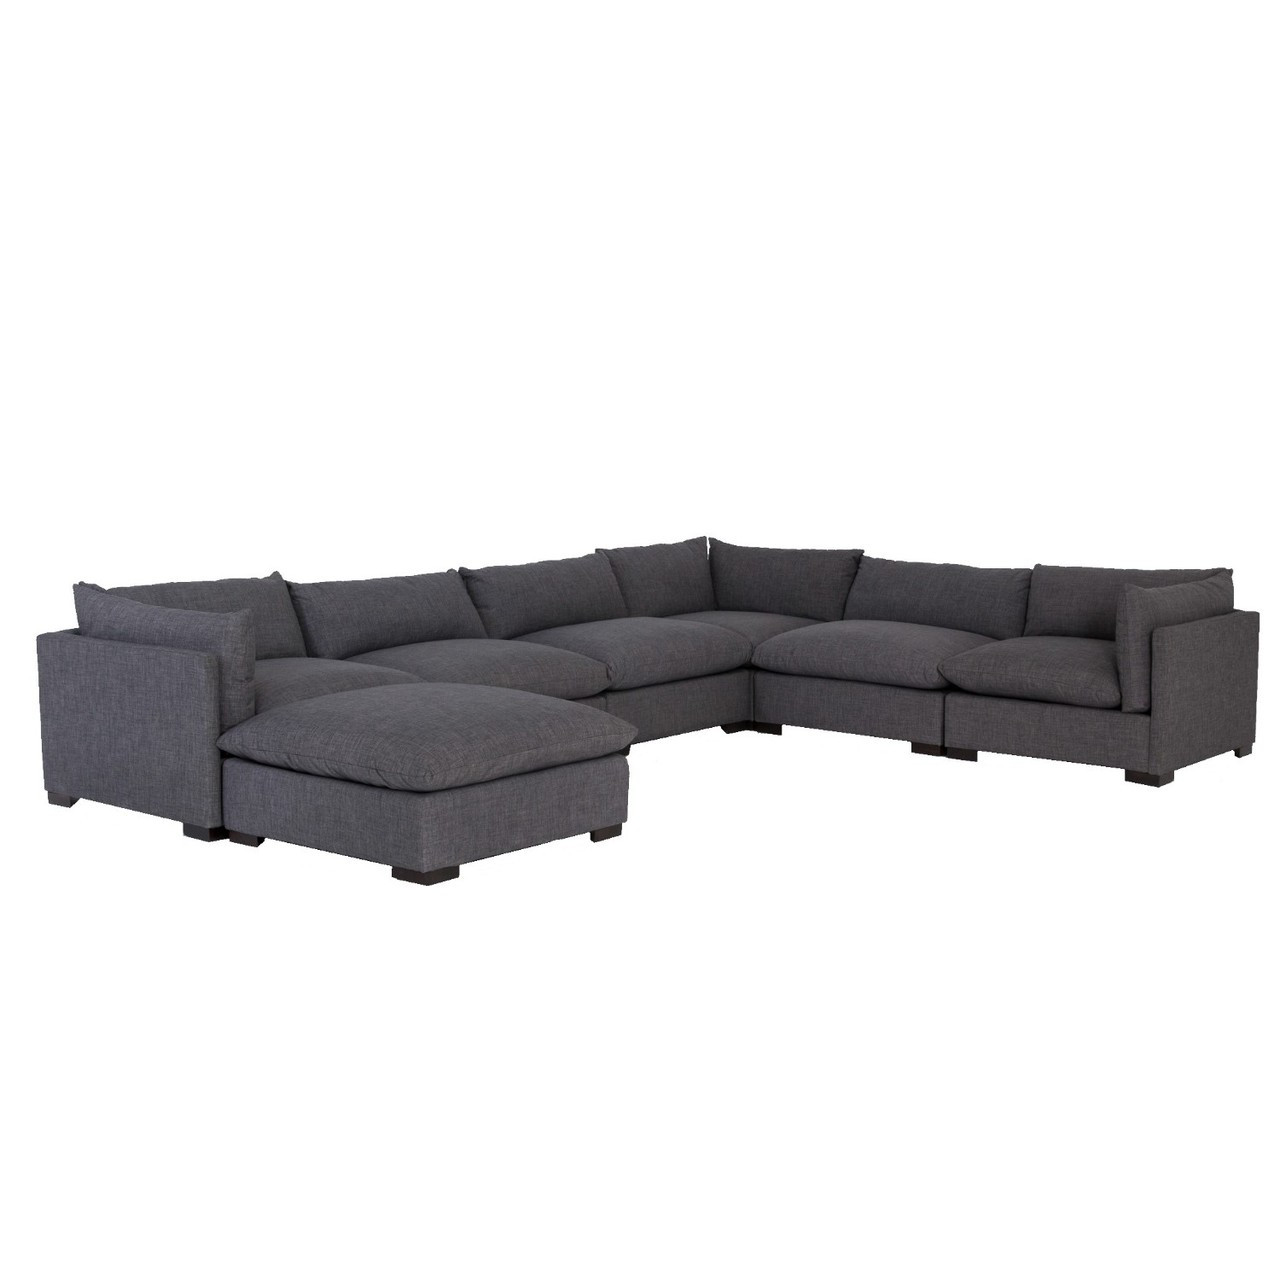 Sofa L Images Westworld Modern Gray 7 Piece L Shape Sectional Sofa 156